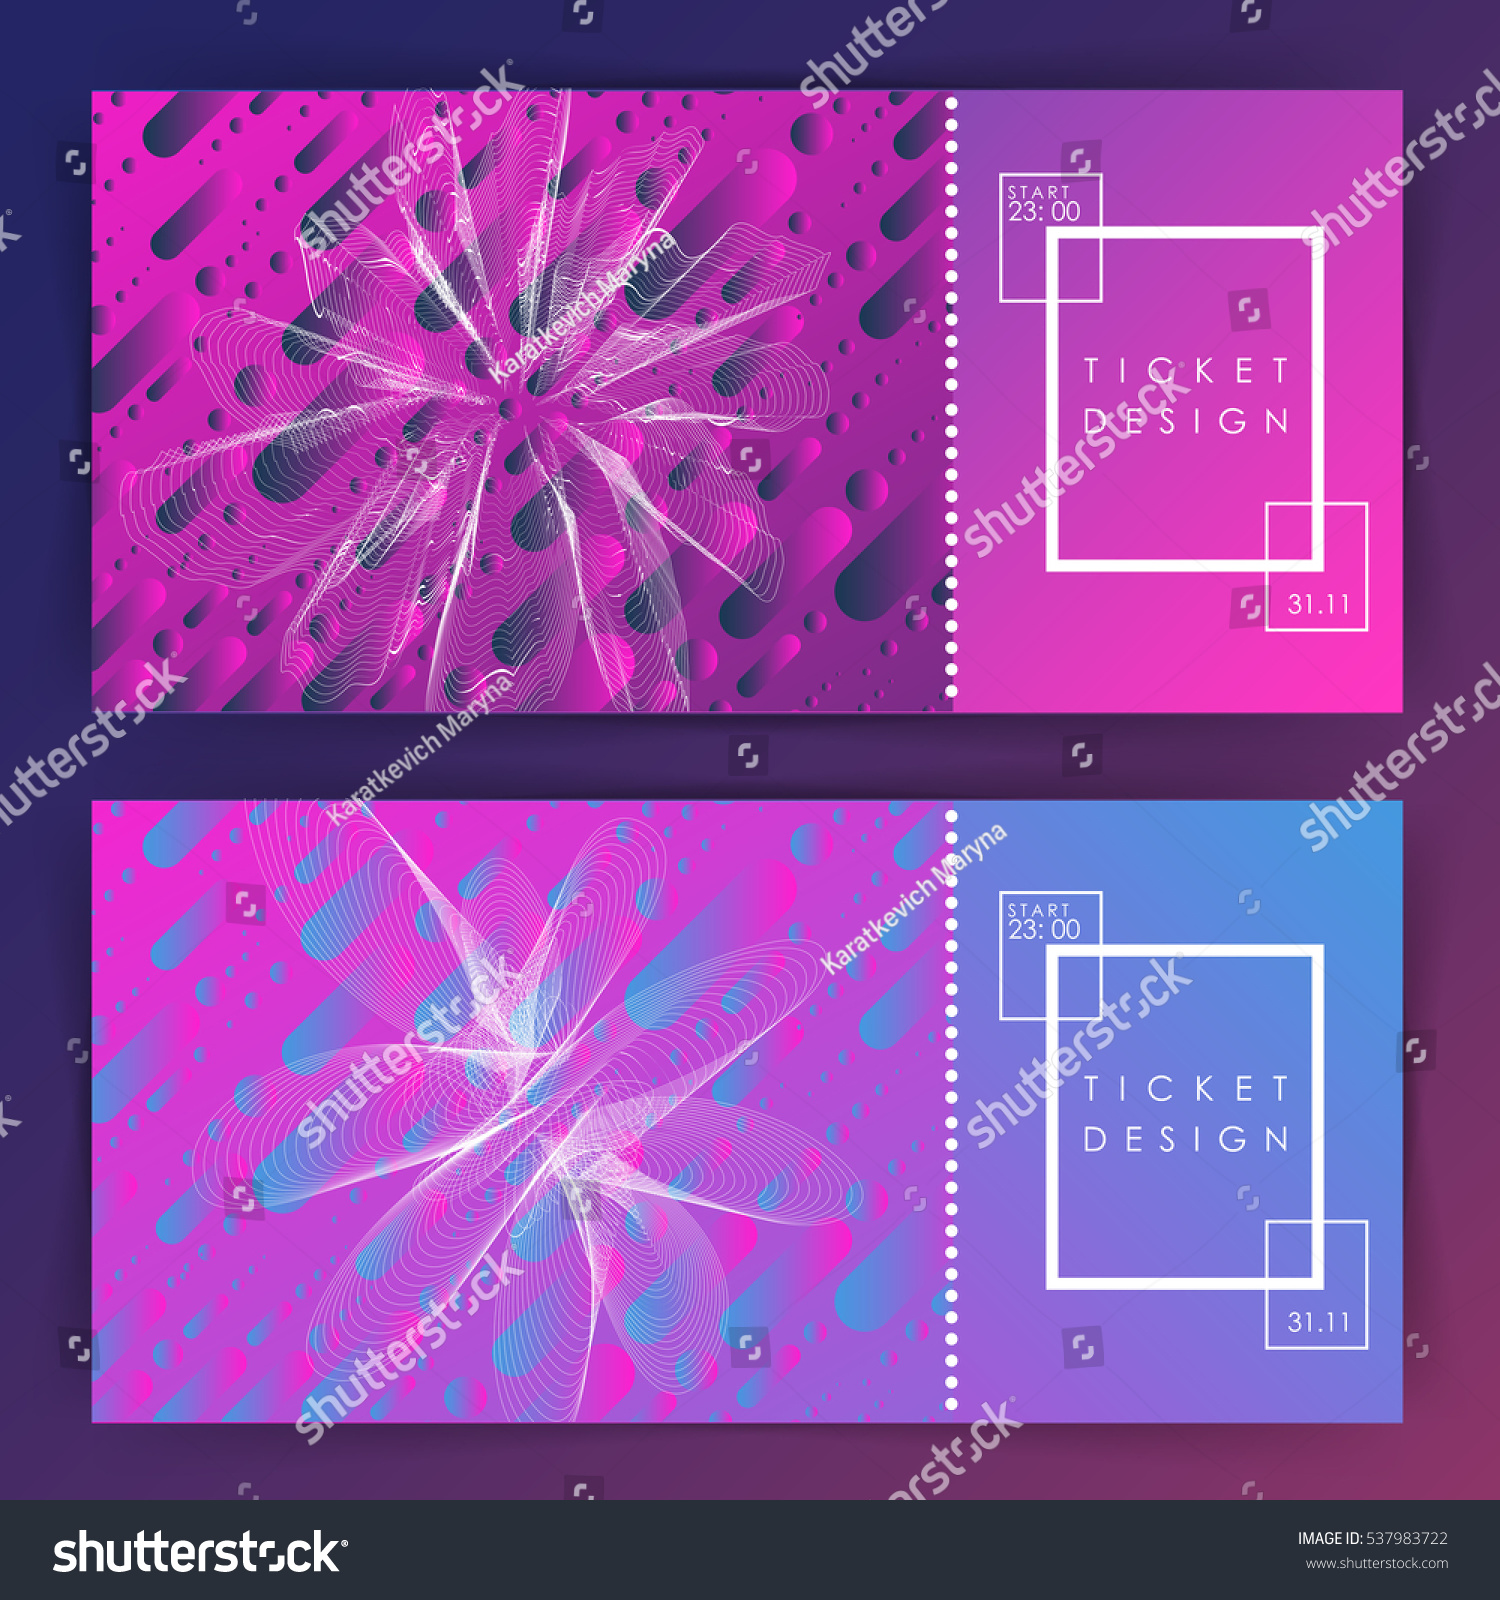 Ticket Design Party Invitation Template Two Stock Vector 537983722 ...